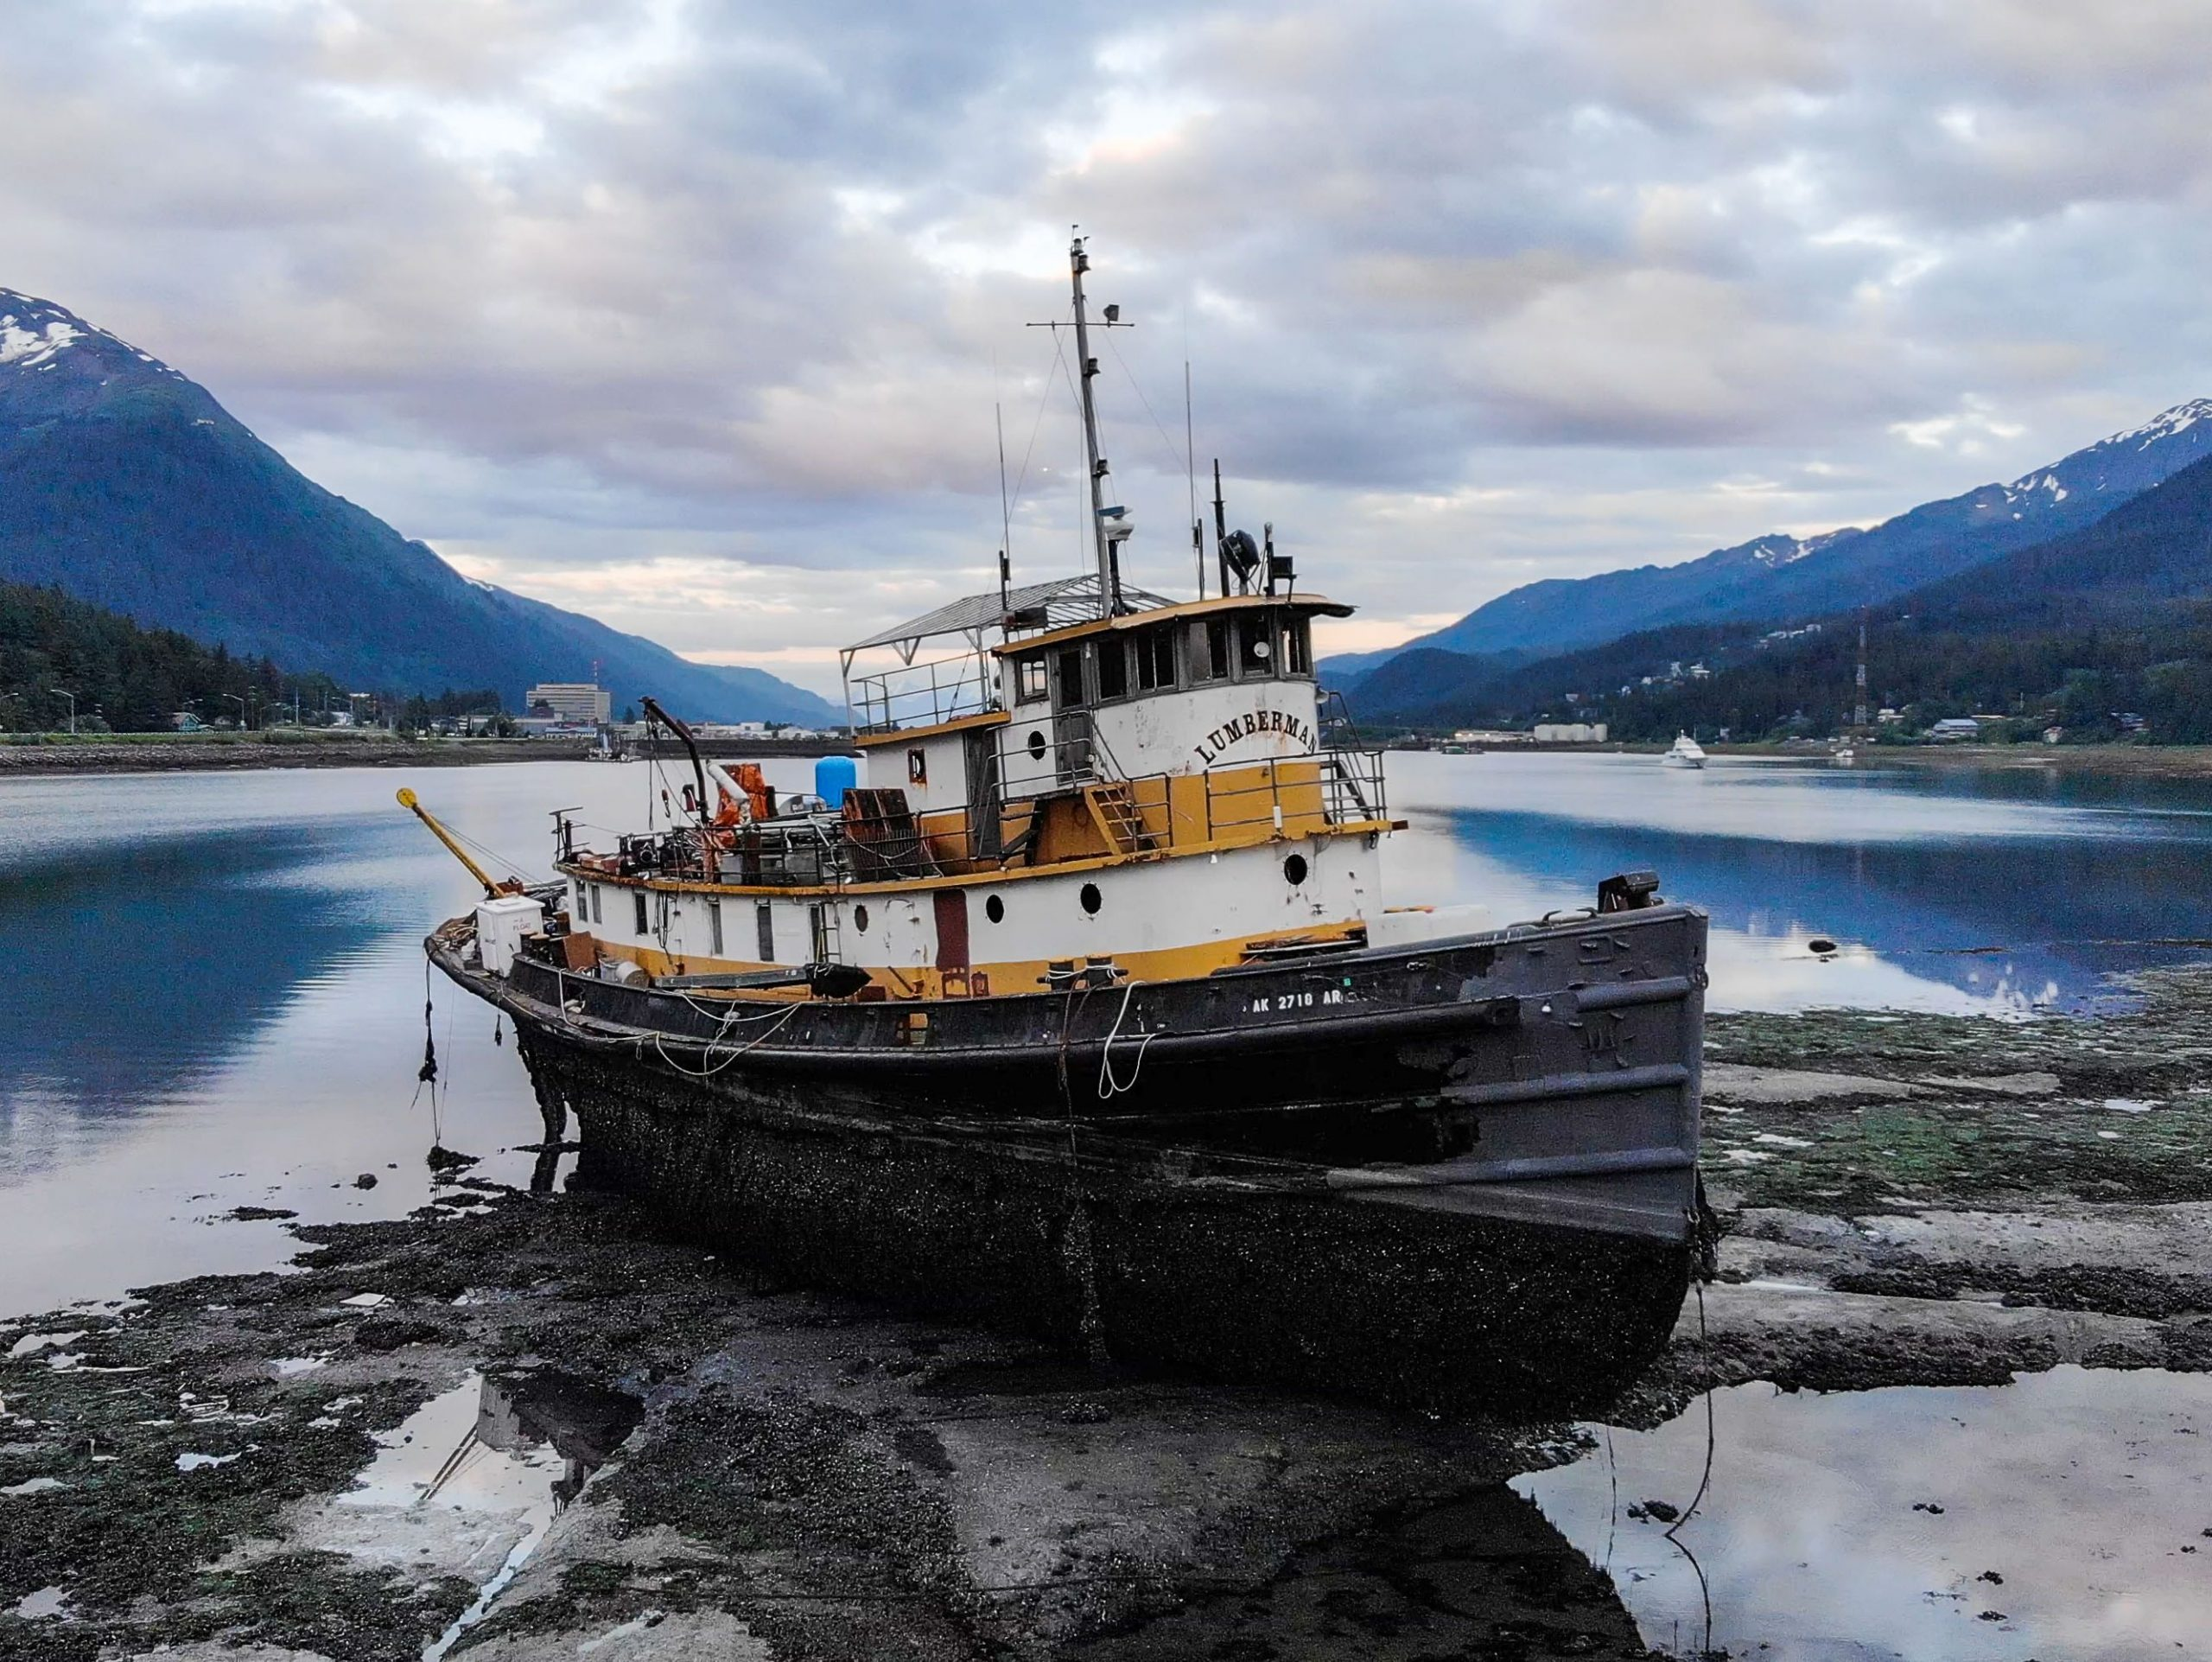 A weathered greyissh tugboat on the sandy beach with mountains in the background